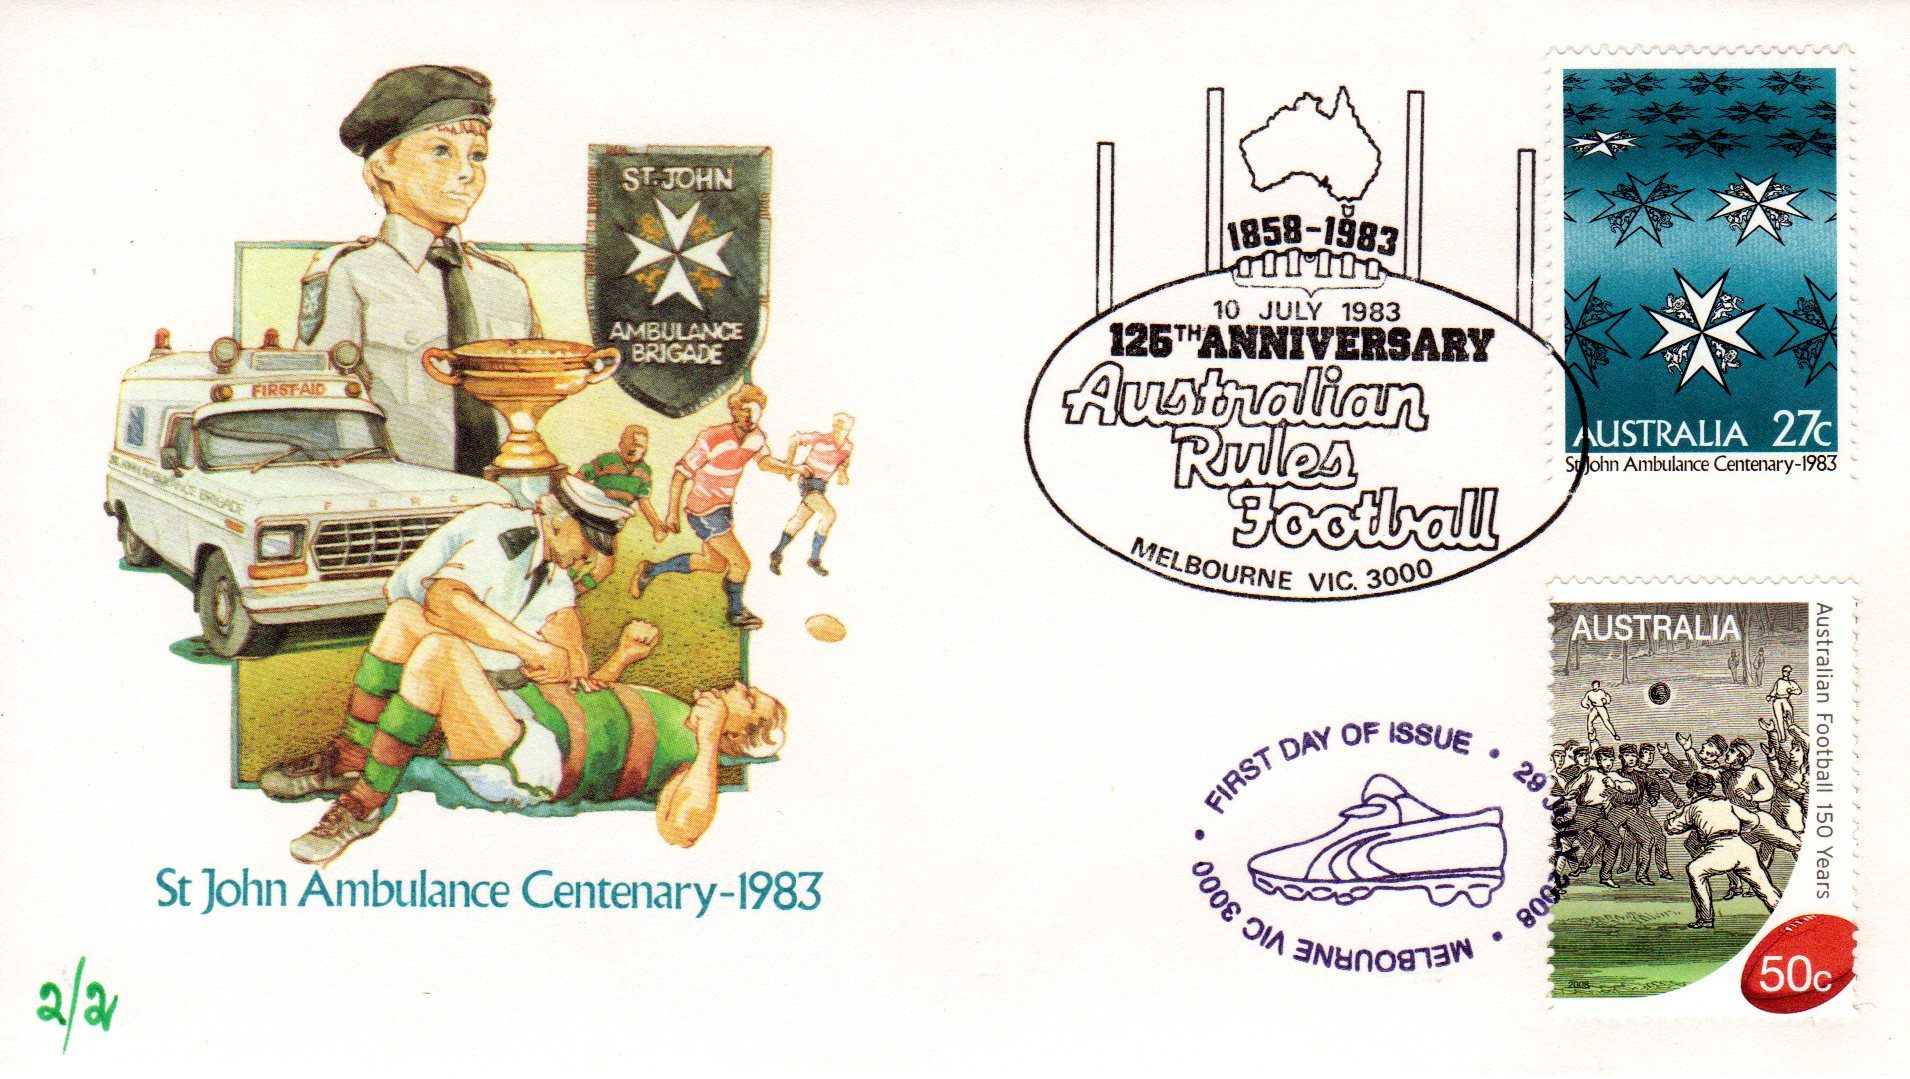 LE FDC MS 150 Years of Australian Football